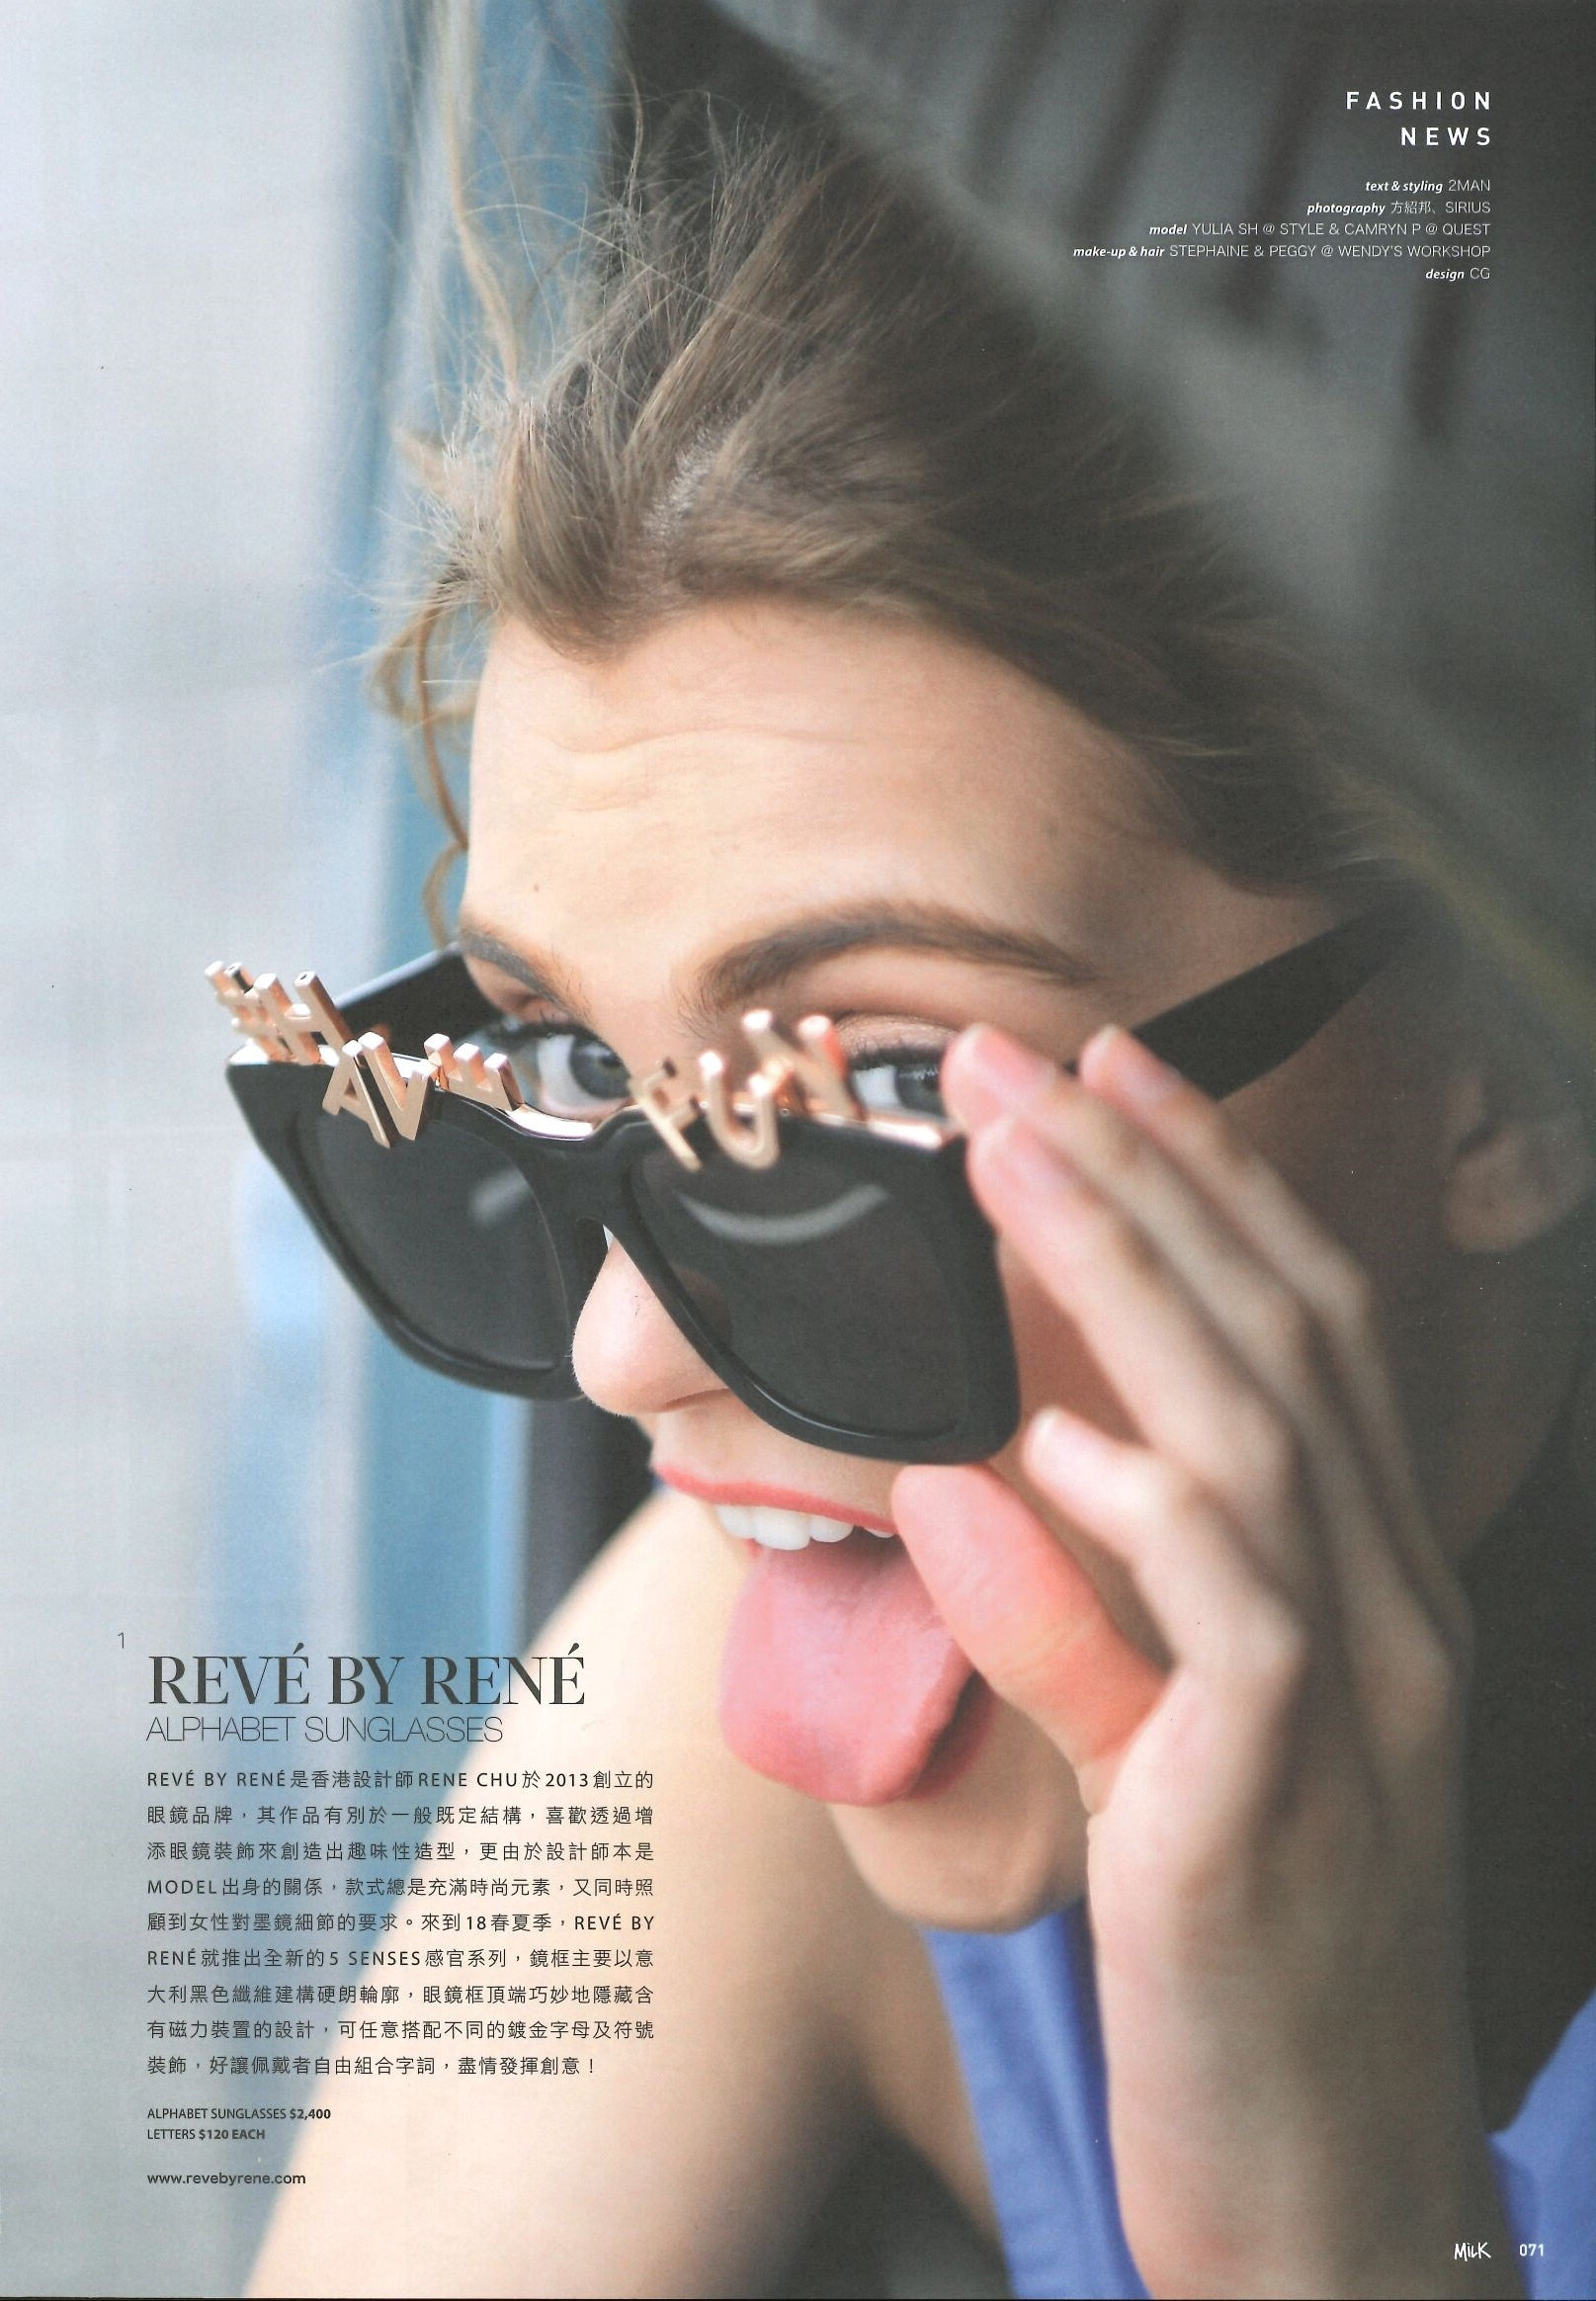 REVE by RENE alphabet sunglasses featured in Milk Magazine